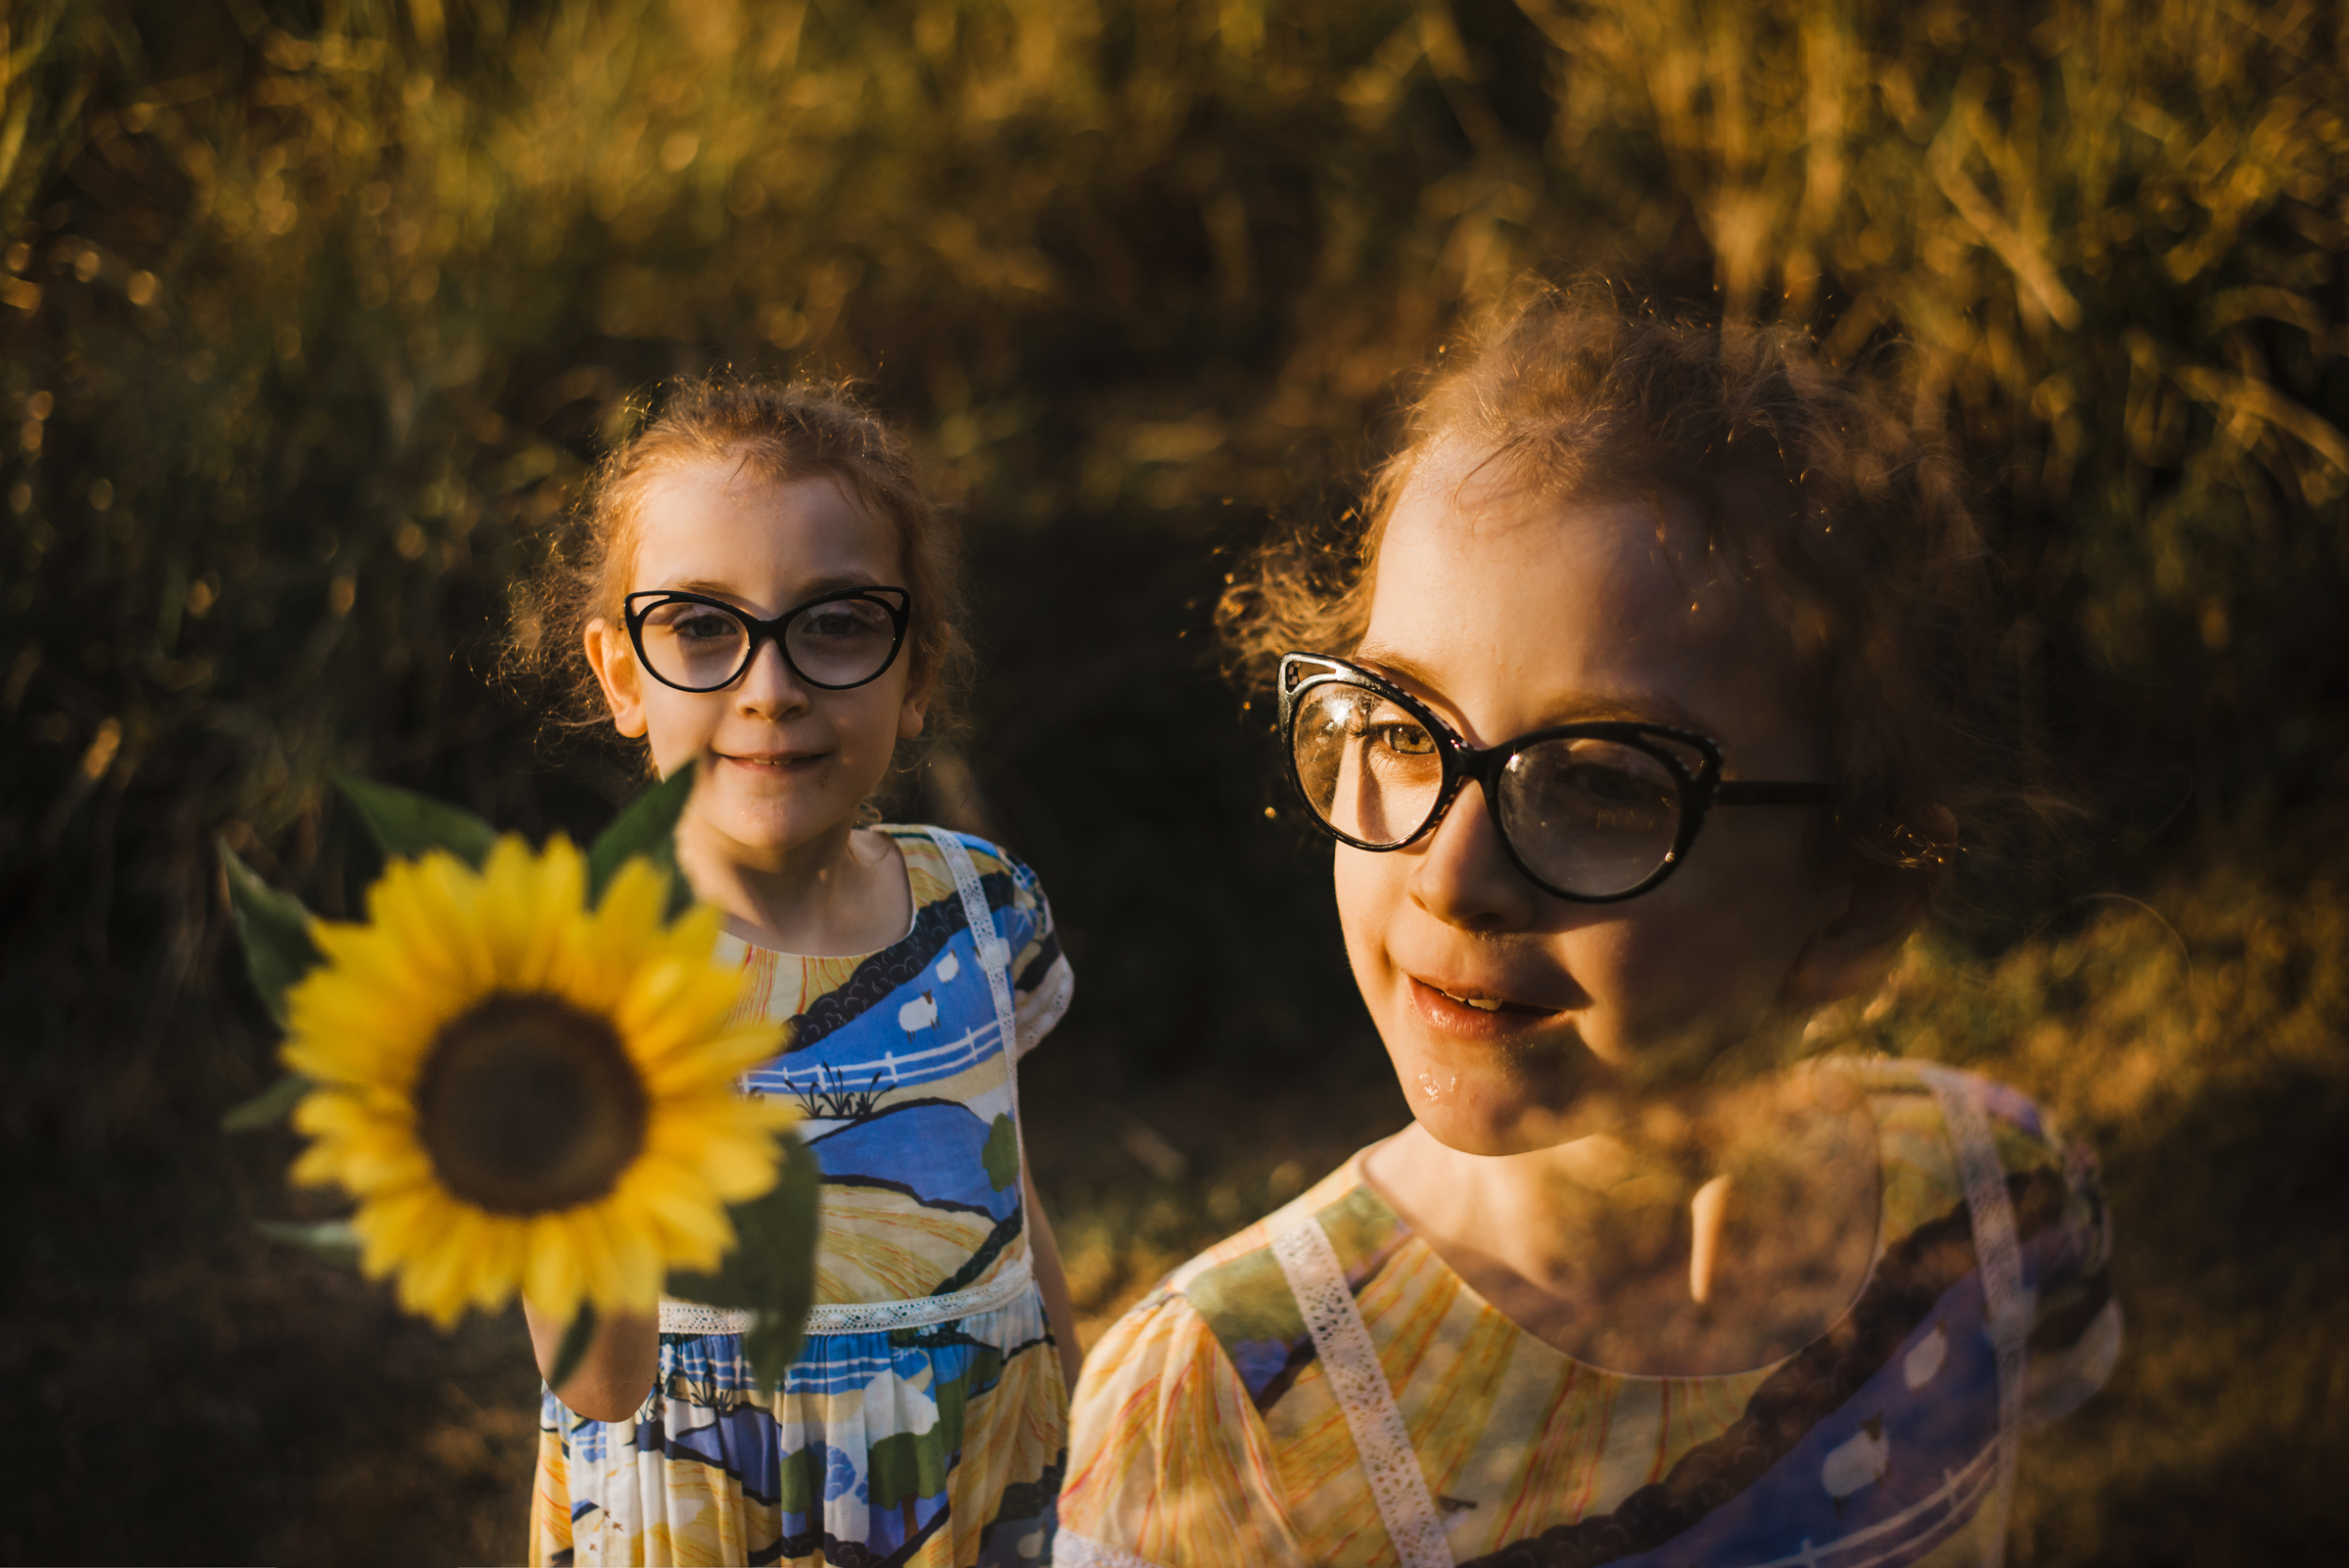 double_exposure_portrait_of_child_with_sunflower.jpg